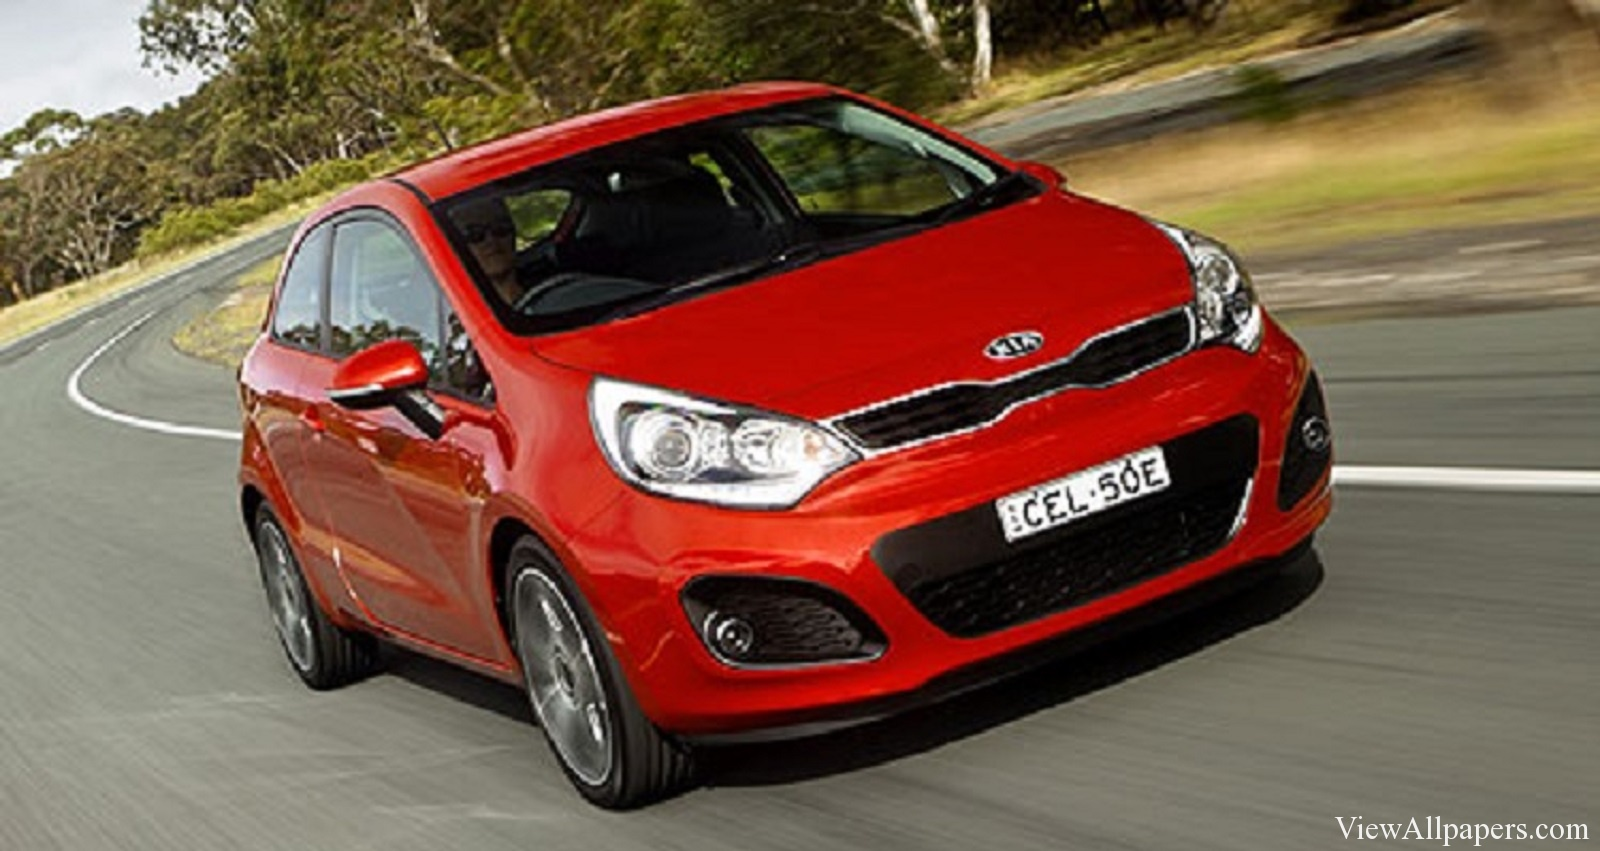 2016 Kia Rio High Resolution Wallpaper download 2016 Kia Rio 1600x851